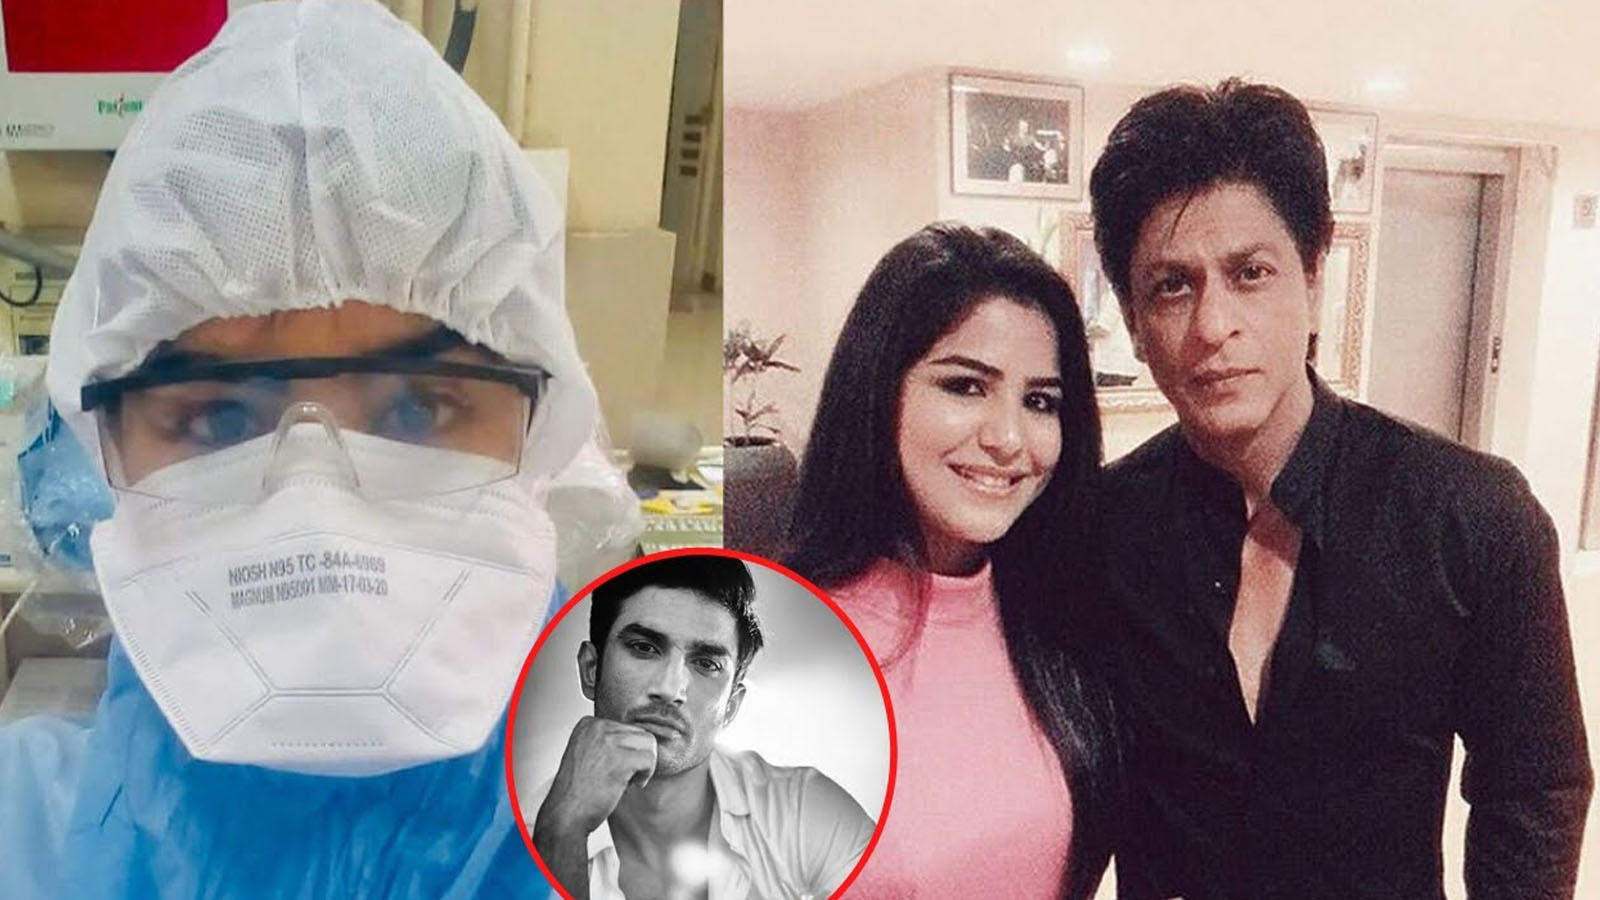 shah-rukh-khans-fan-co-star-shikha-malhotra-says-she-has-been-scared-since-sushant-singh-rajputs-death